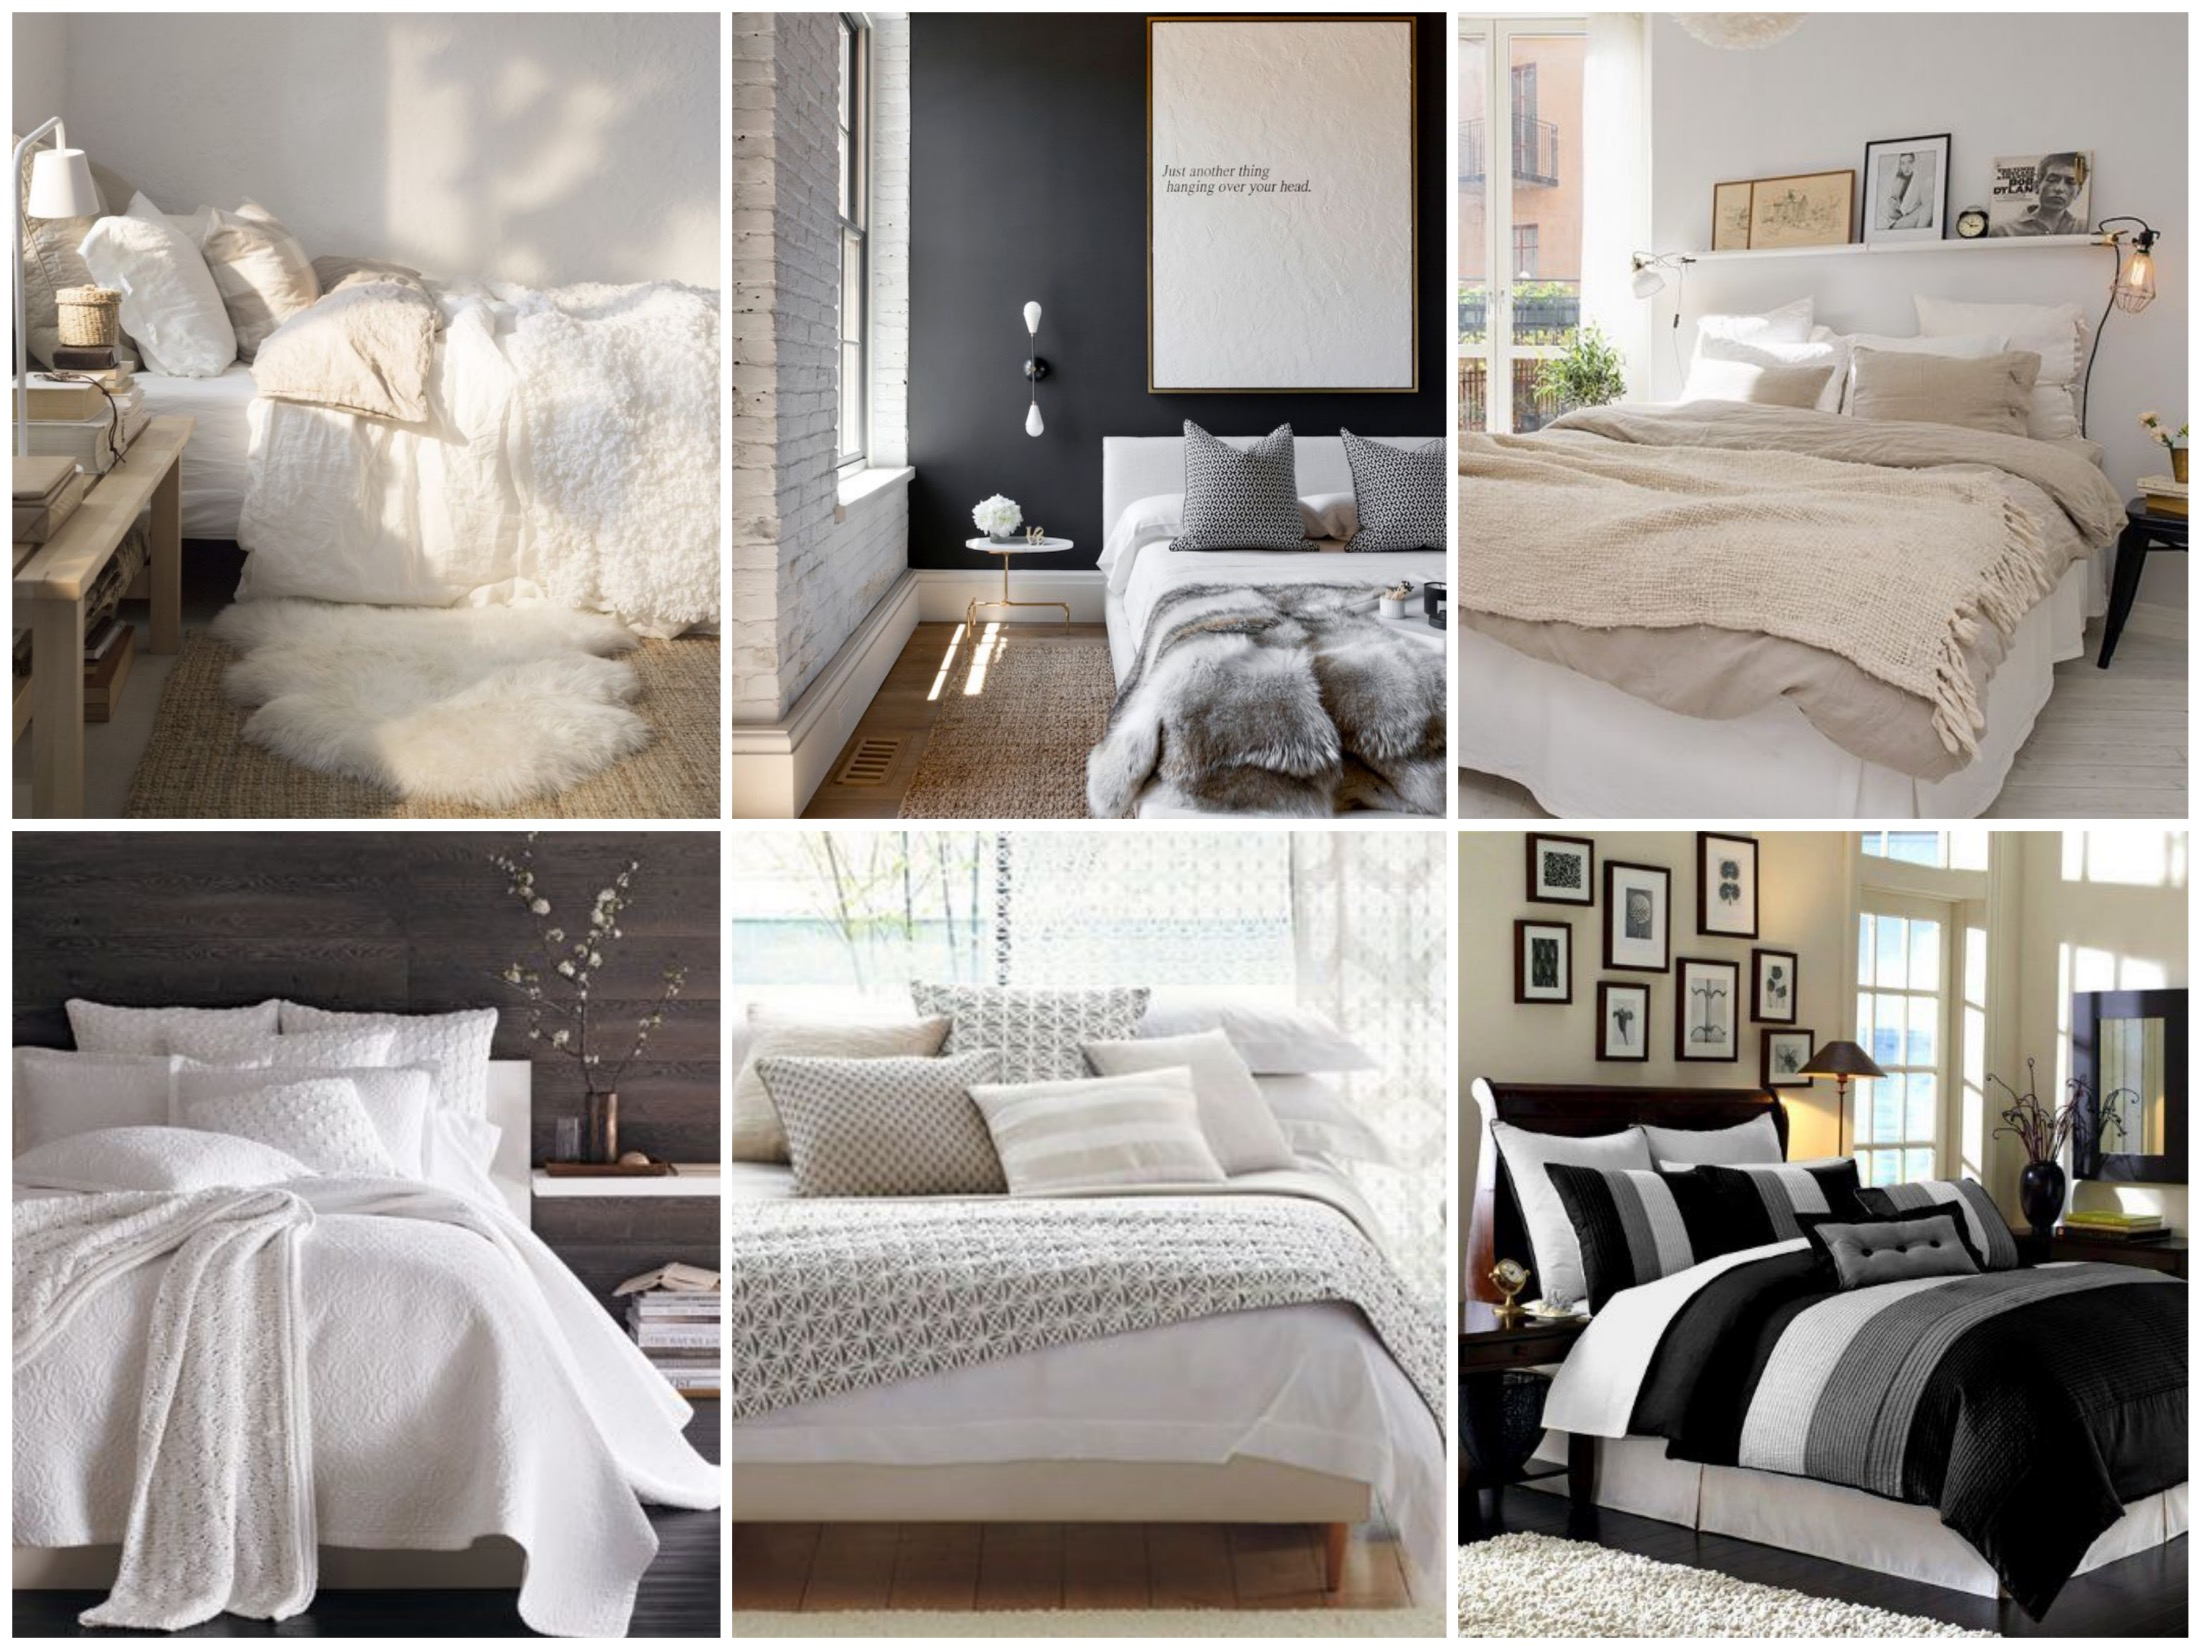 Inspirations d co de jolies parures de lit zara home for Deco chambre cocooning